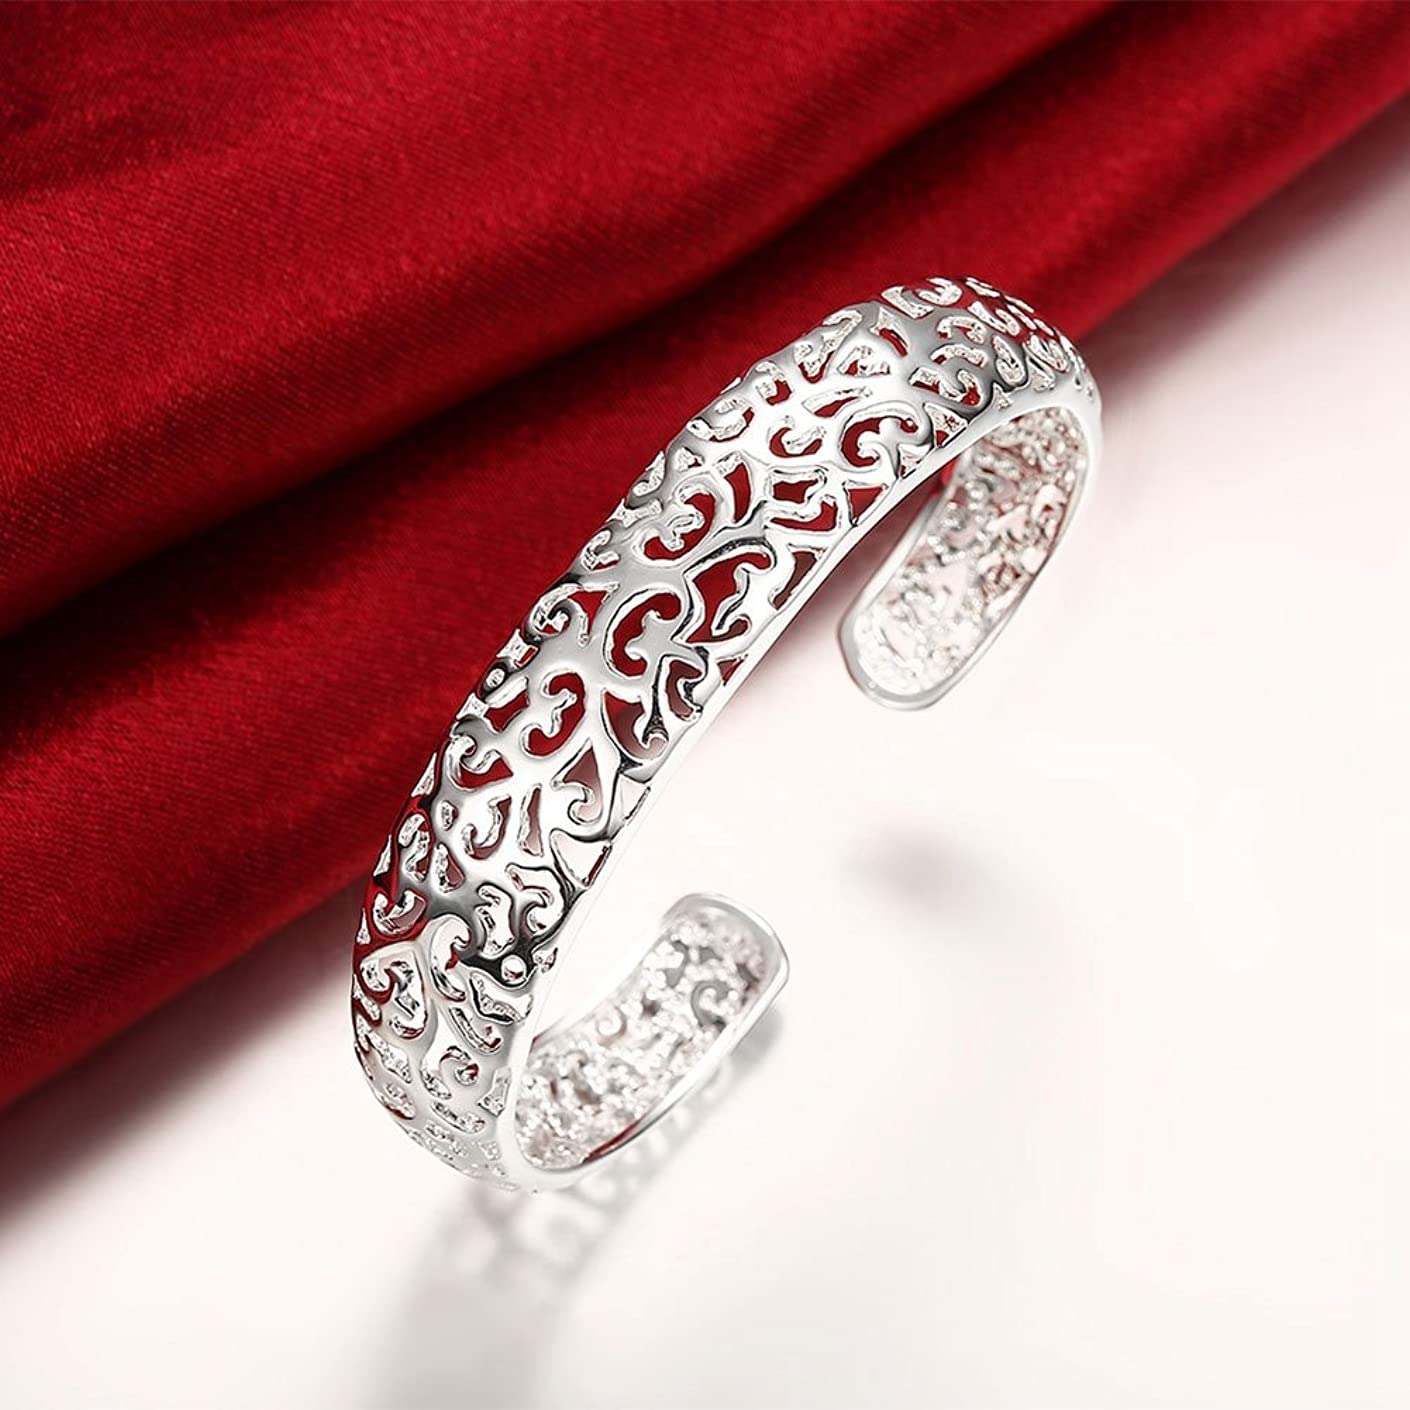 QIANQIAN 925 Silver Plated Open Adjustable Openwork Bracelet Packet Edge Pattern Vintage Bracelet for Women